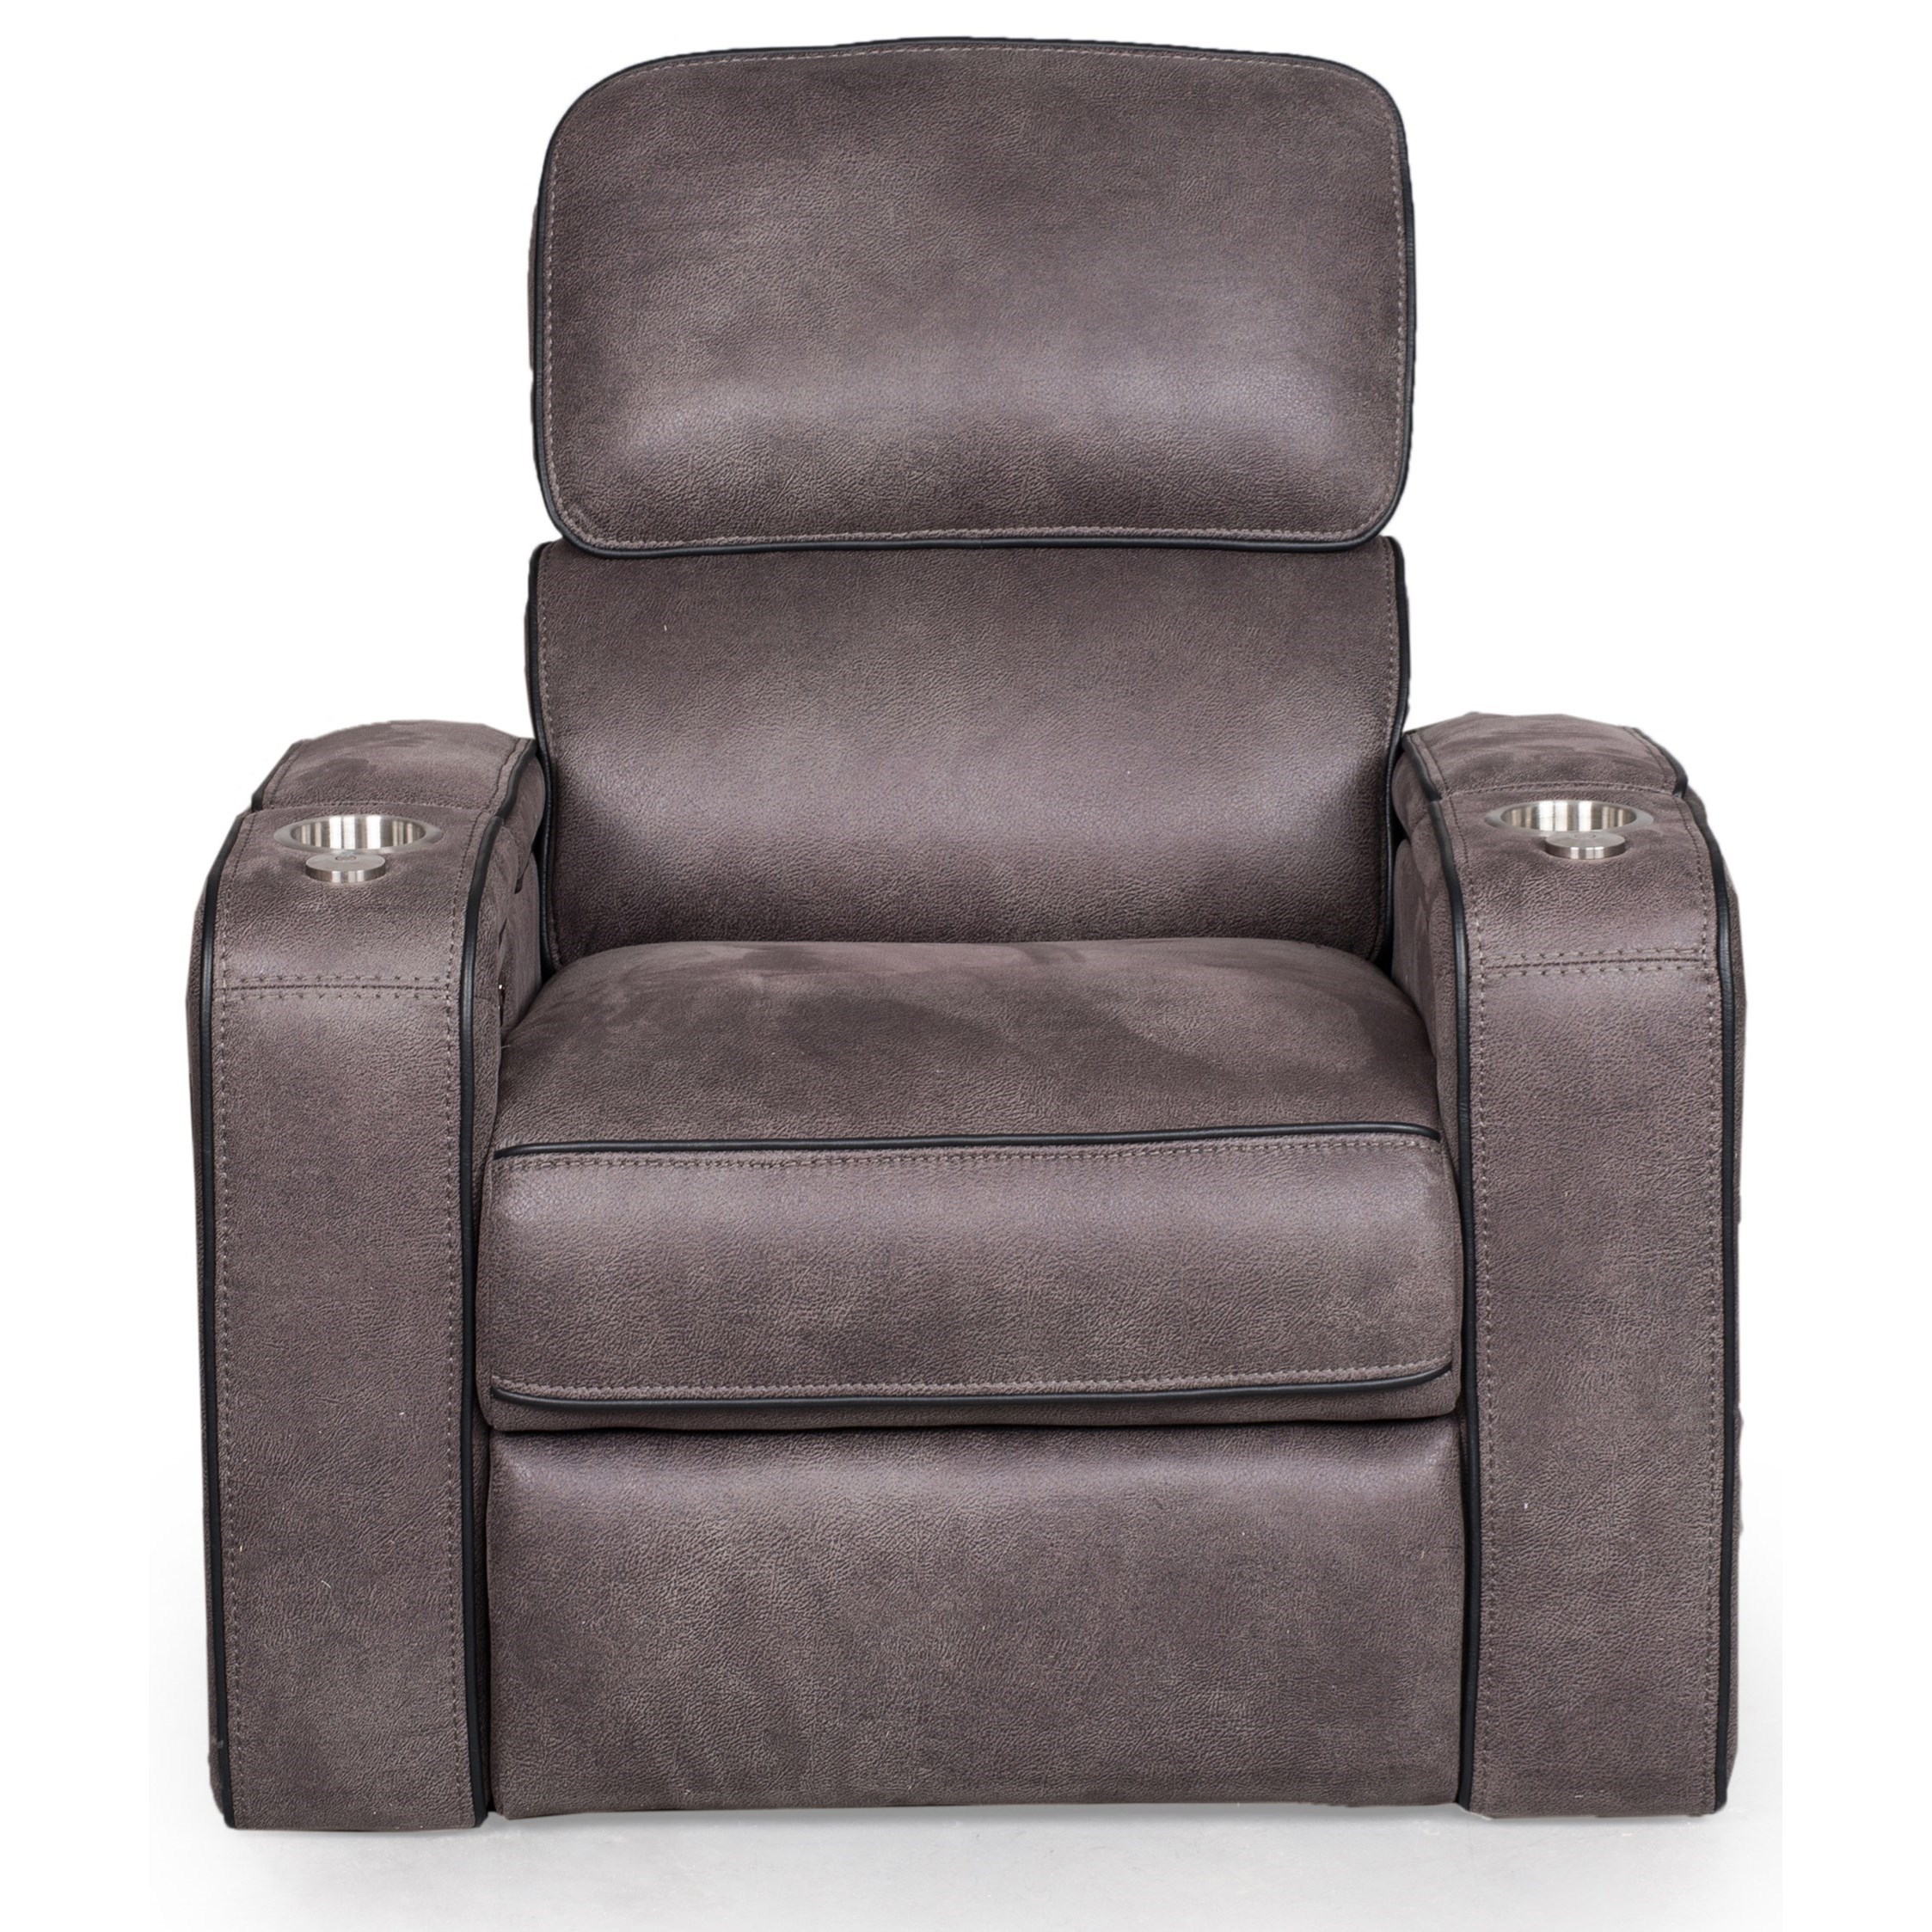 541 Power Headrest Recliner by Synergy Home Furnishings at Beck's Furniture